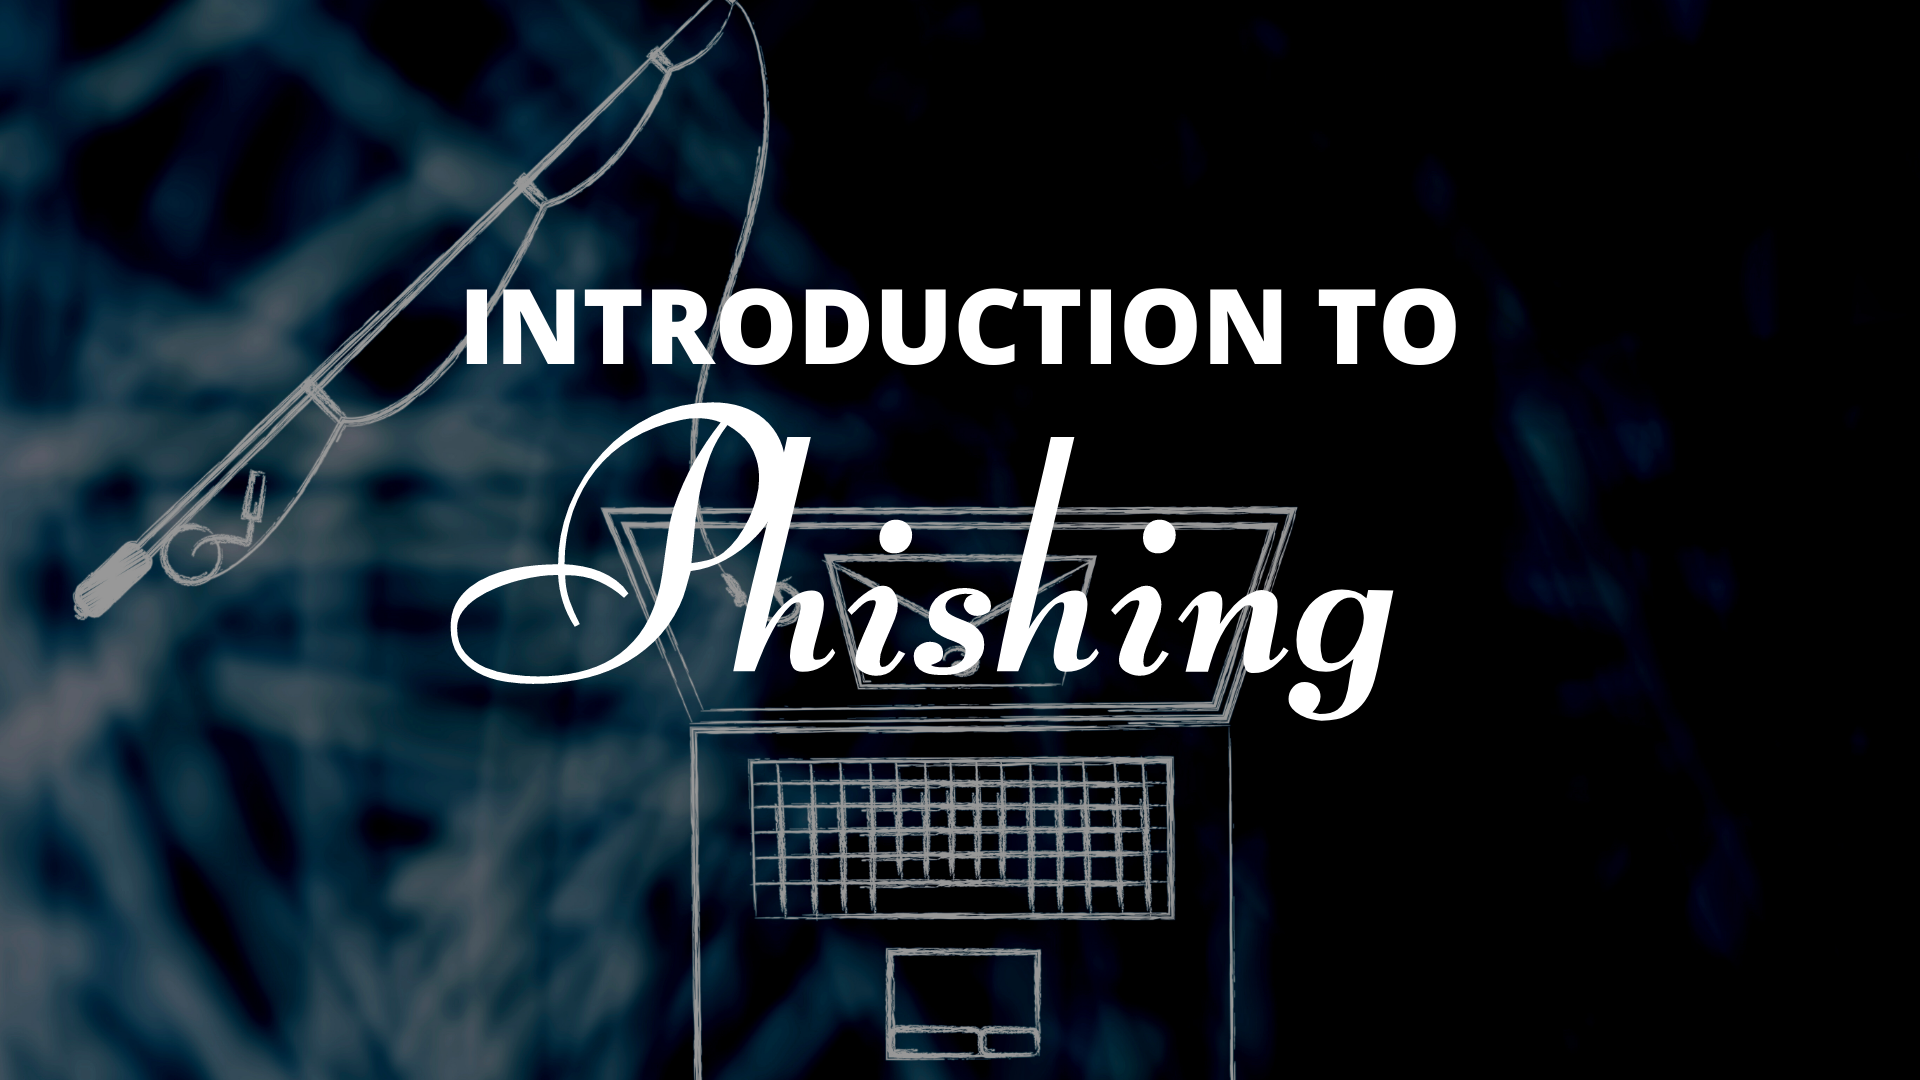 Introduction to Phishing